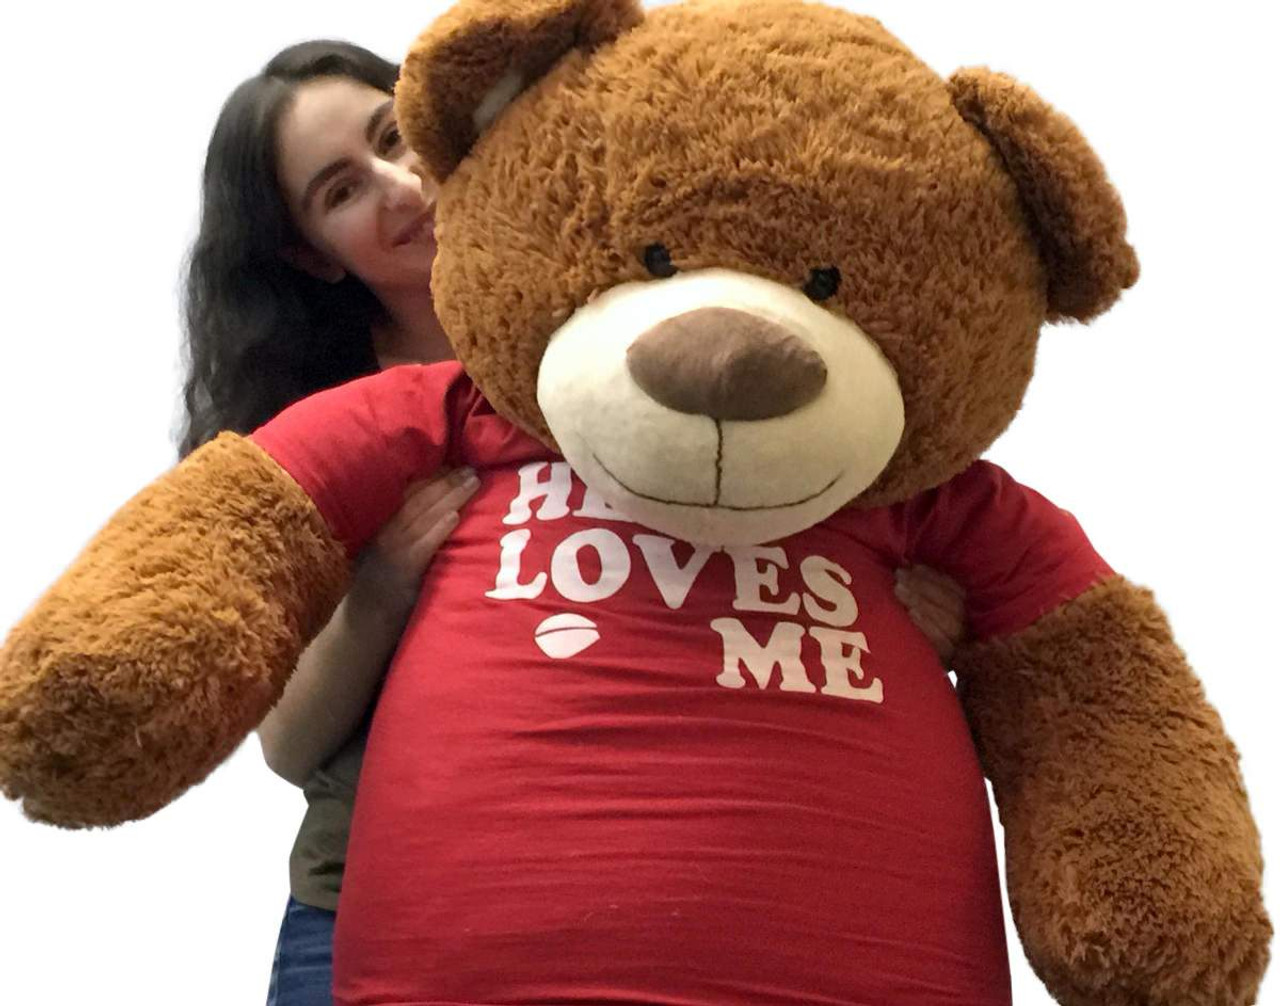 da6de9867e5 ... Big Plush 5 Foot Giant Teddy Bear 60 Inch Soft Brown Wears HE LOVES ME T  ...